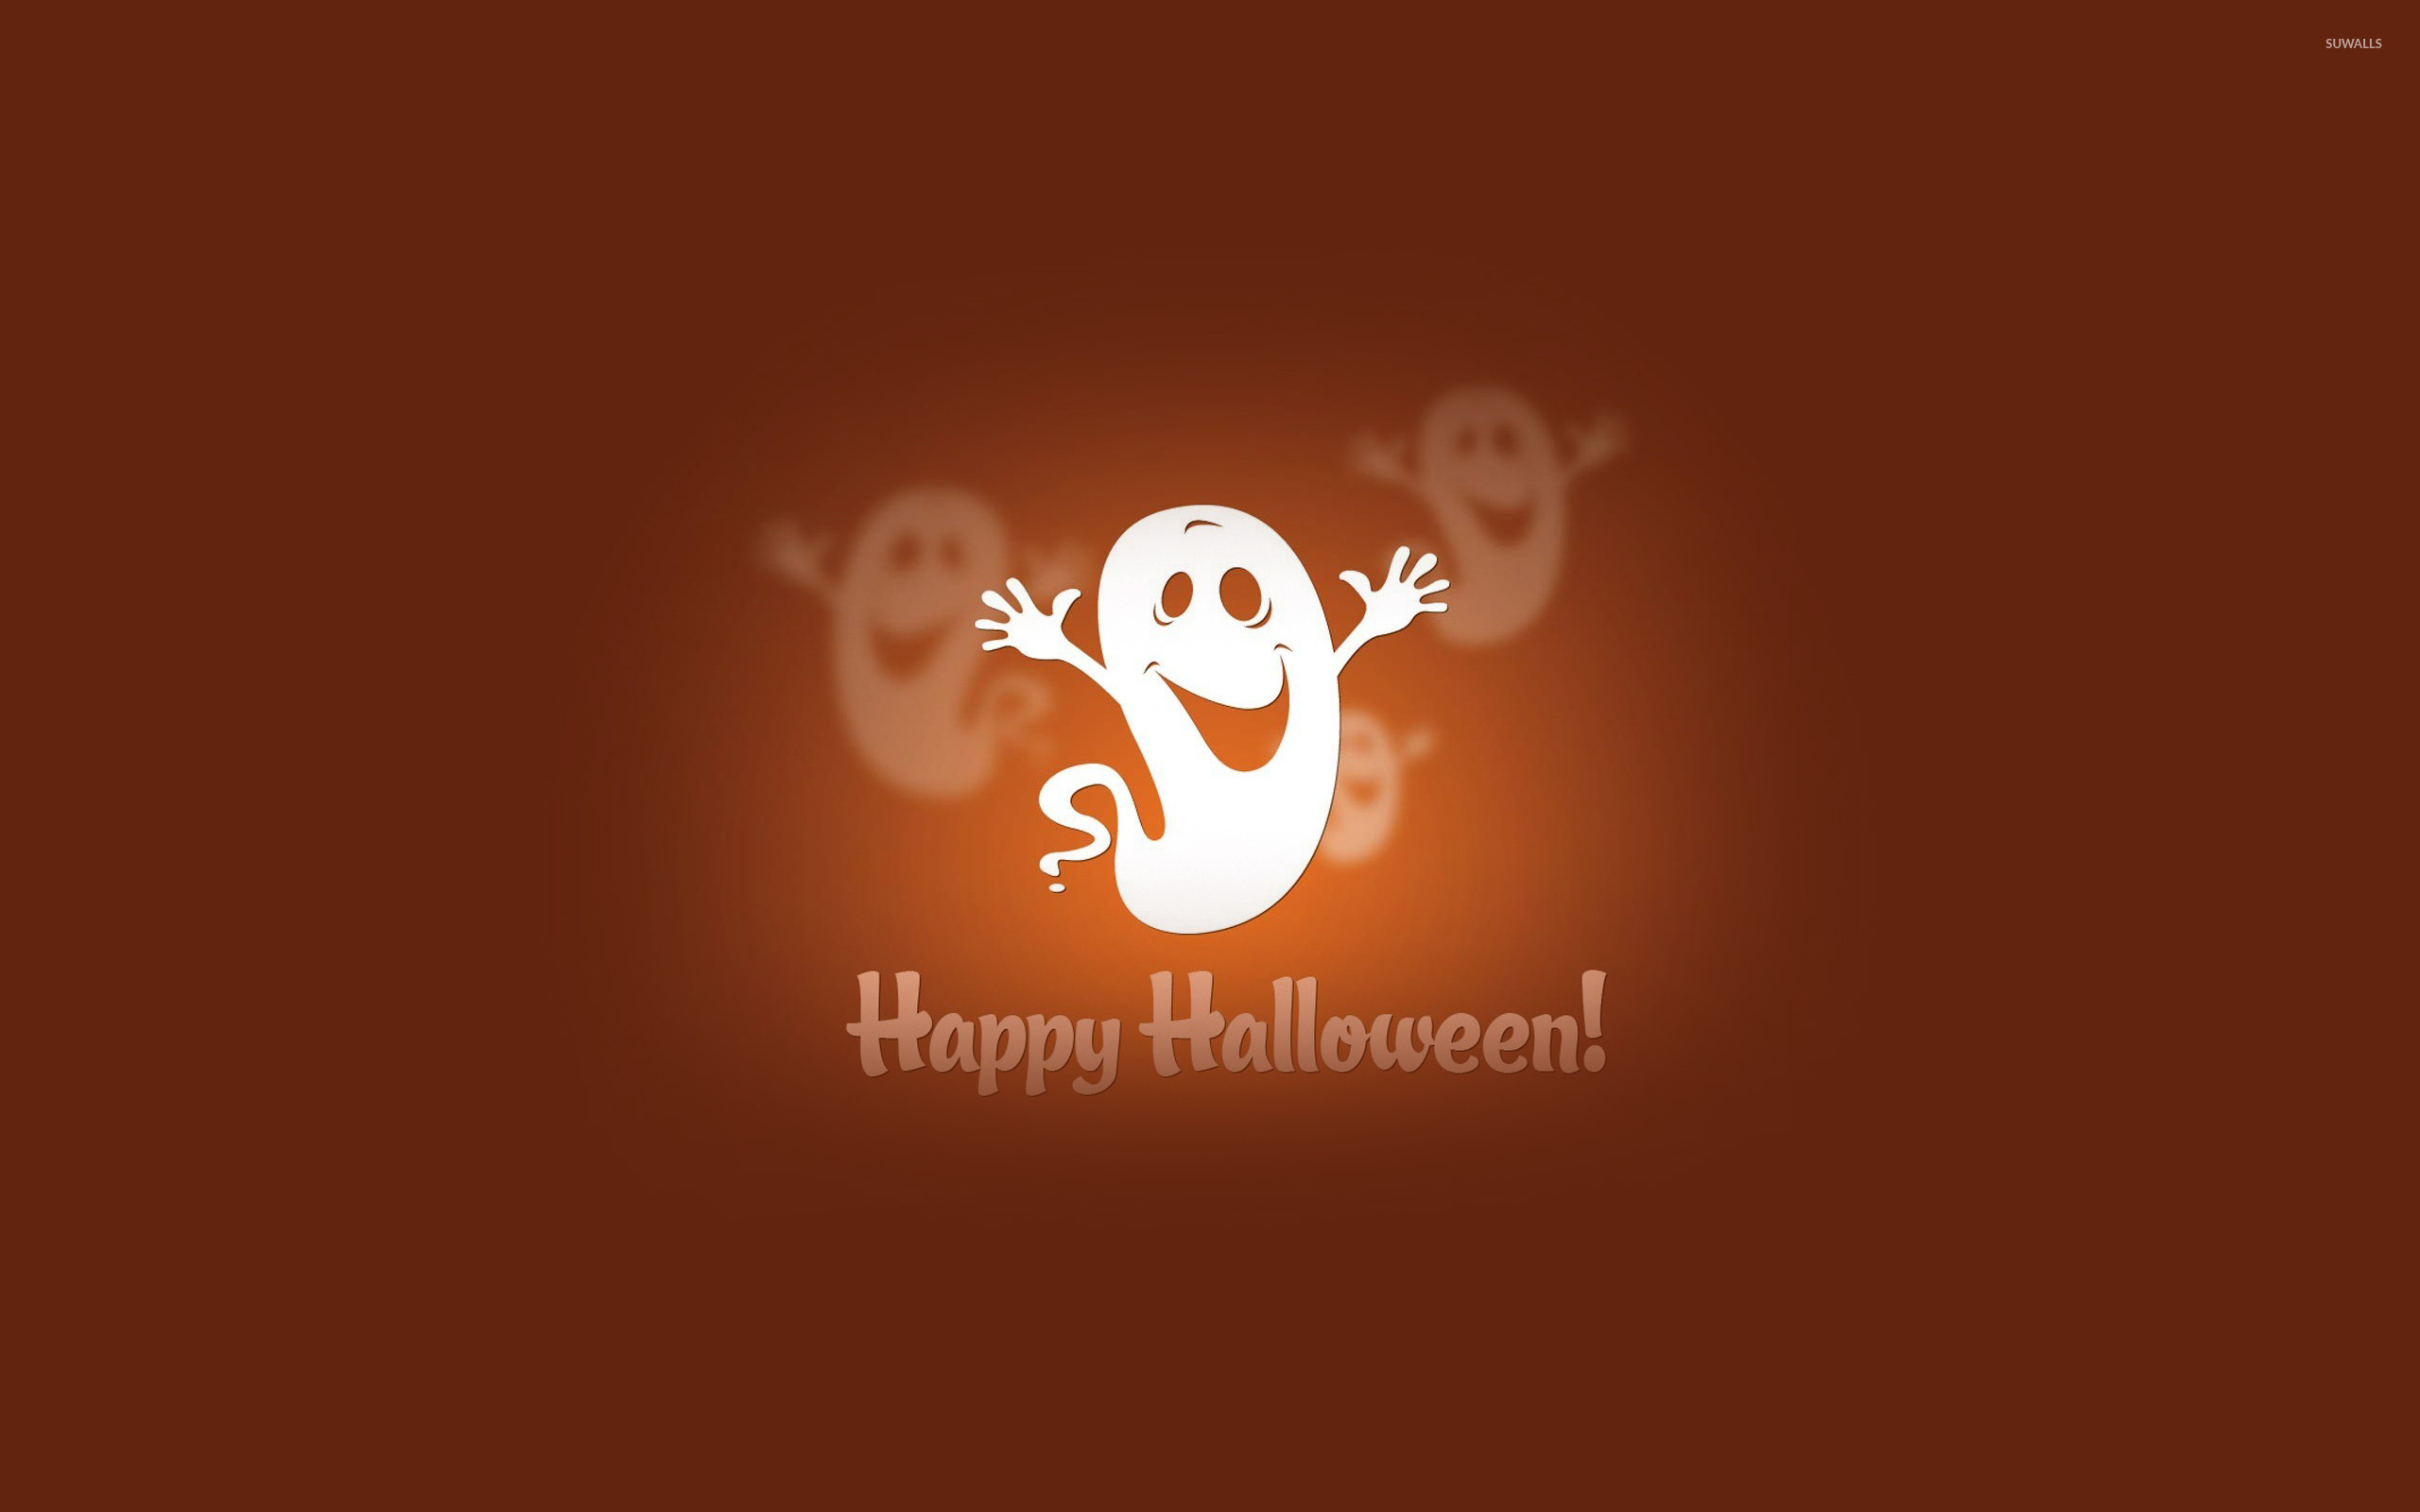 Happy Halloween wallpaper   Holiday wallpapers   15092 1366x768